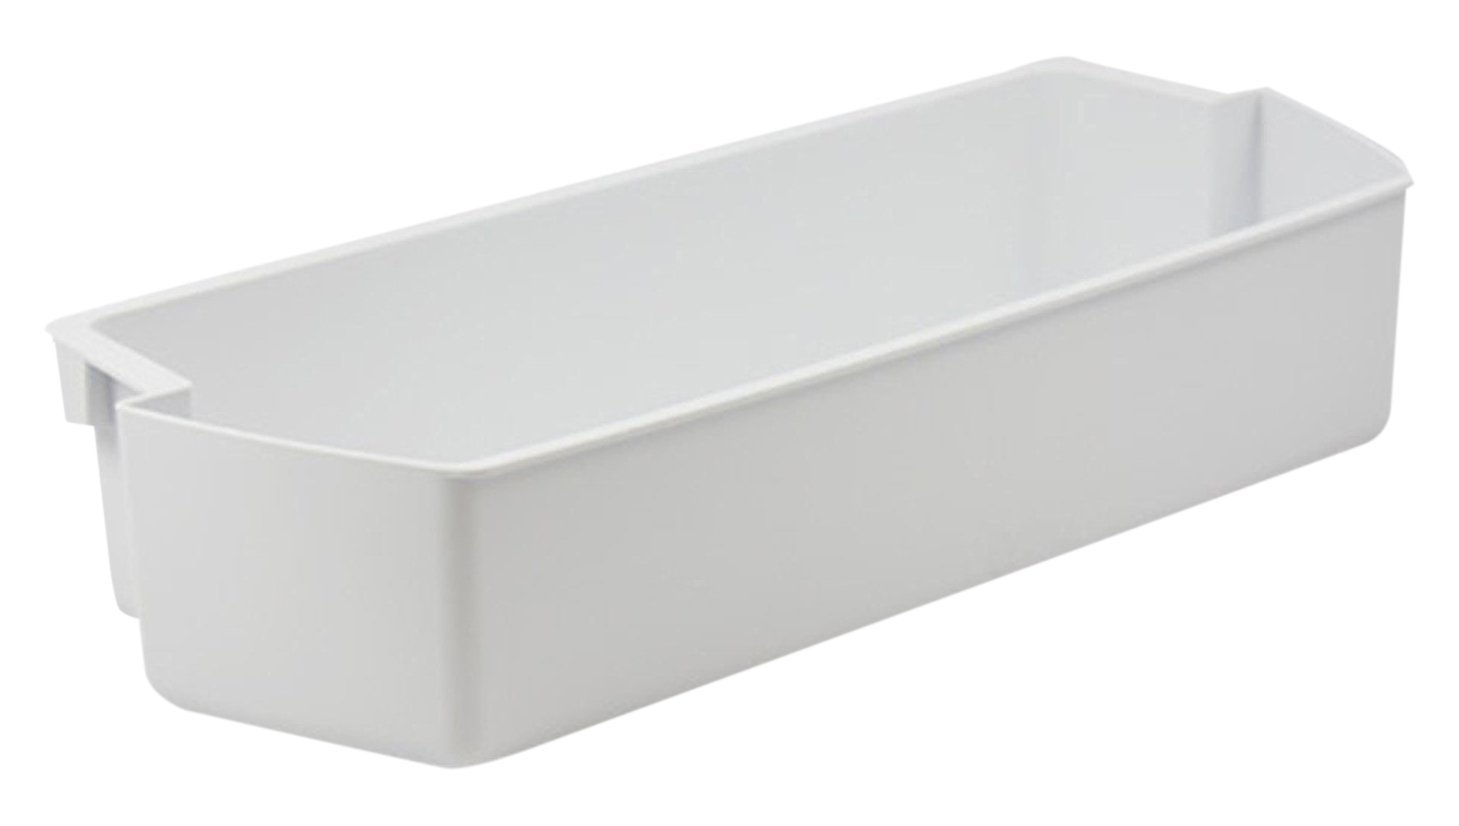 WP2187172, 2187172 Door Bin Compatible With Whirlpool Refrigerator